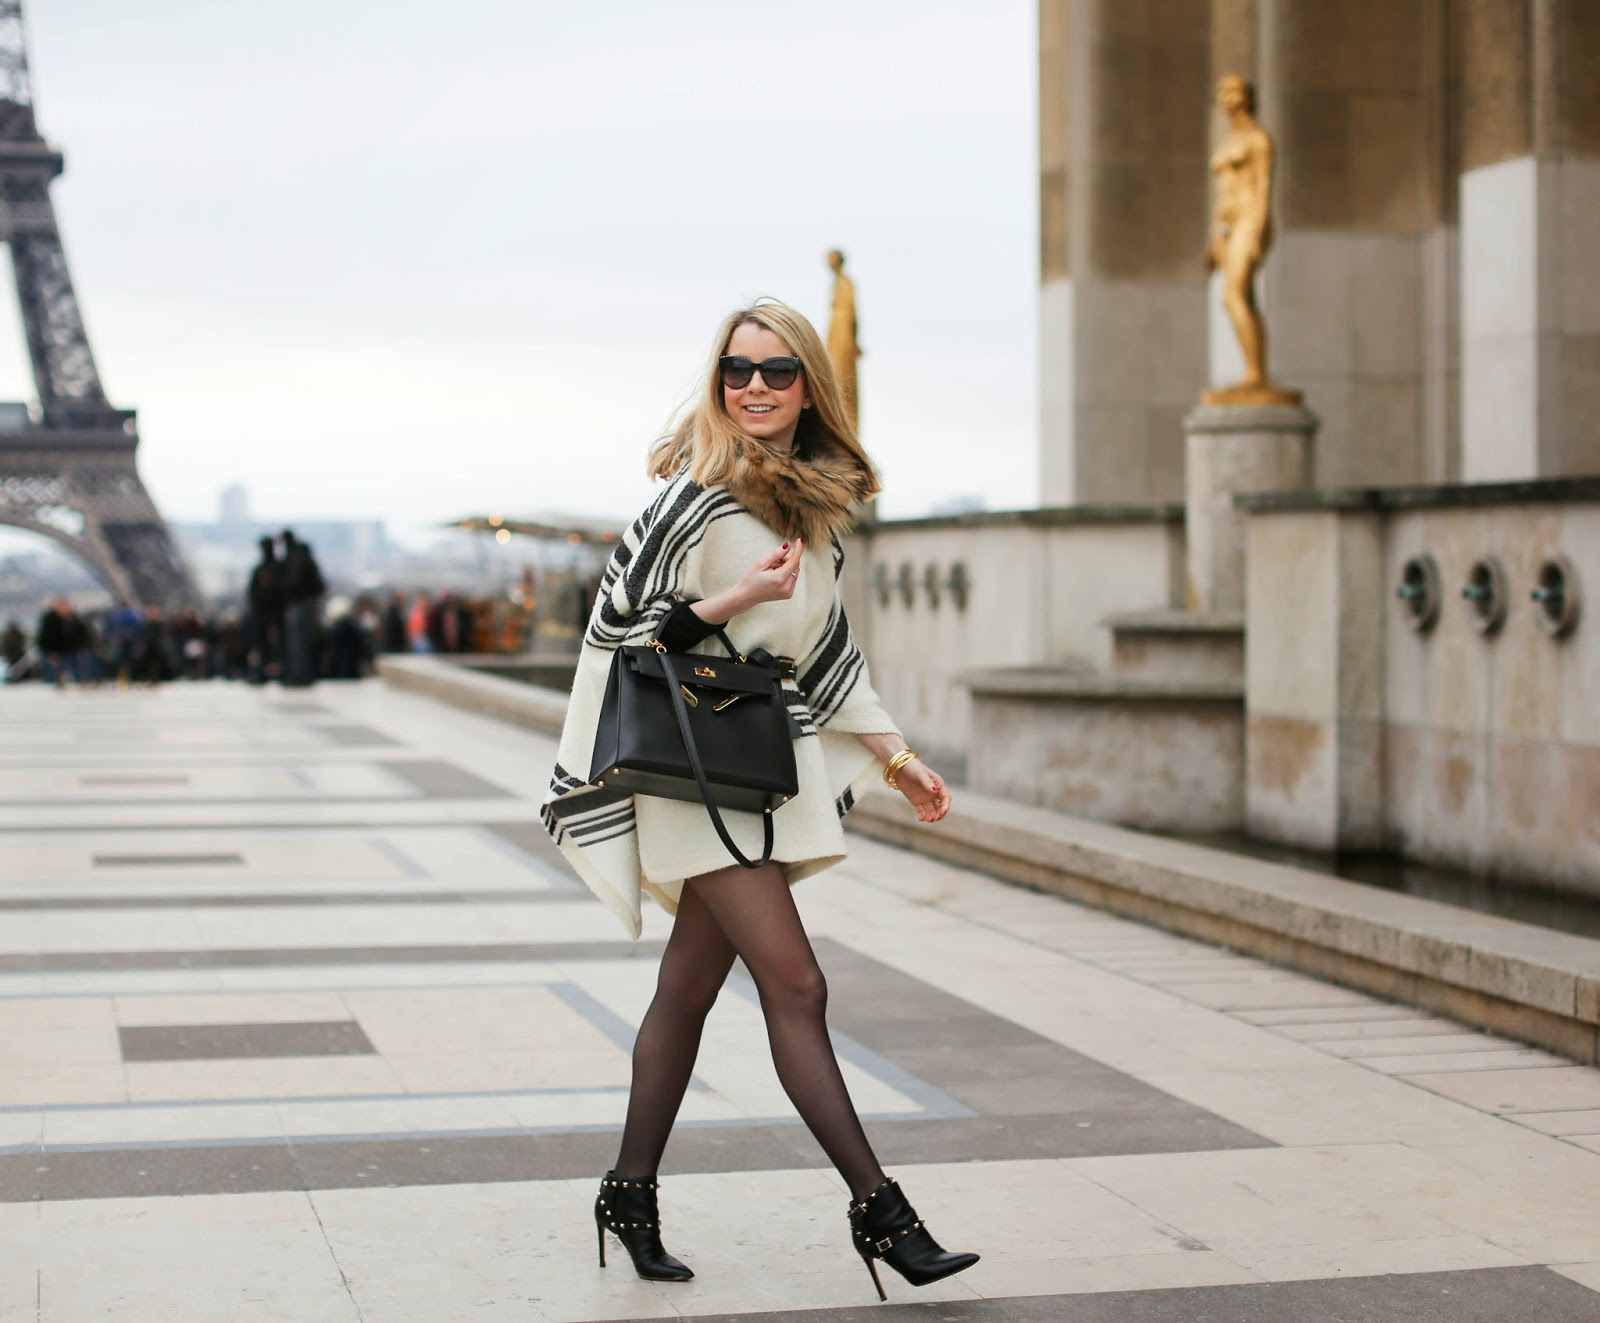 cape, zara, topshop, valentino, hermès, chanel, streetstyle, fashion blogger, paris, eiffel tower